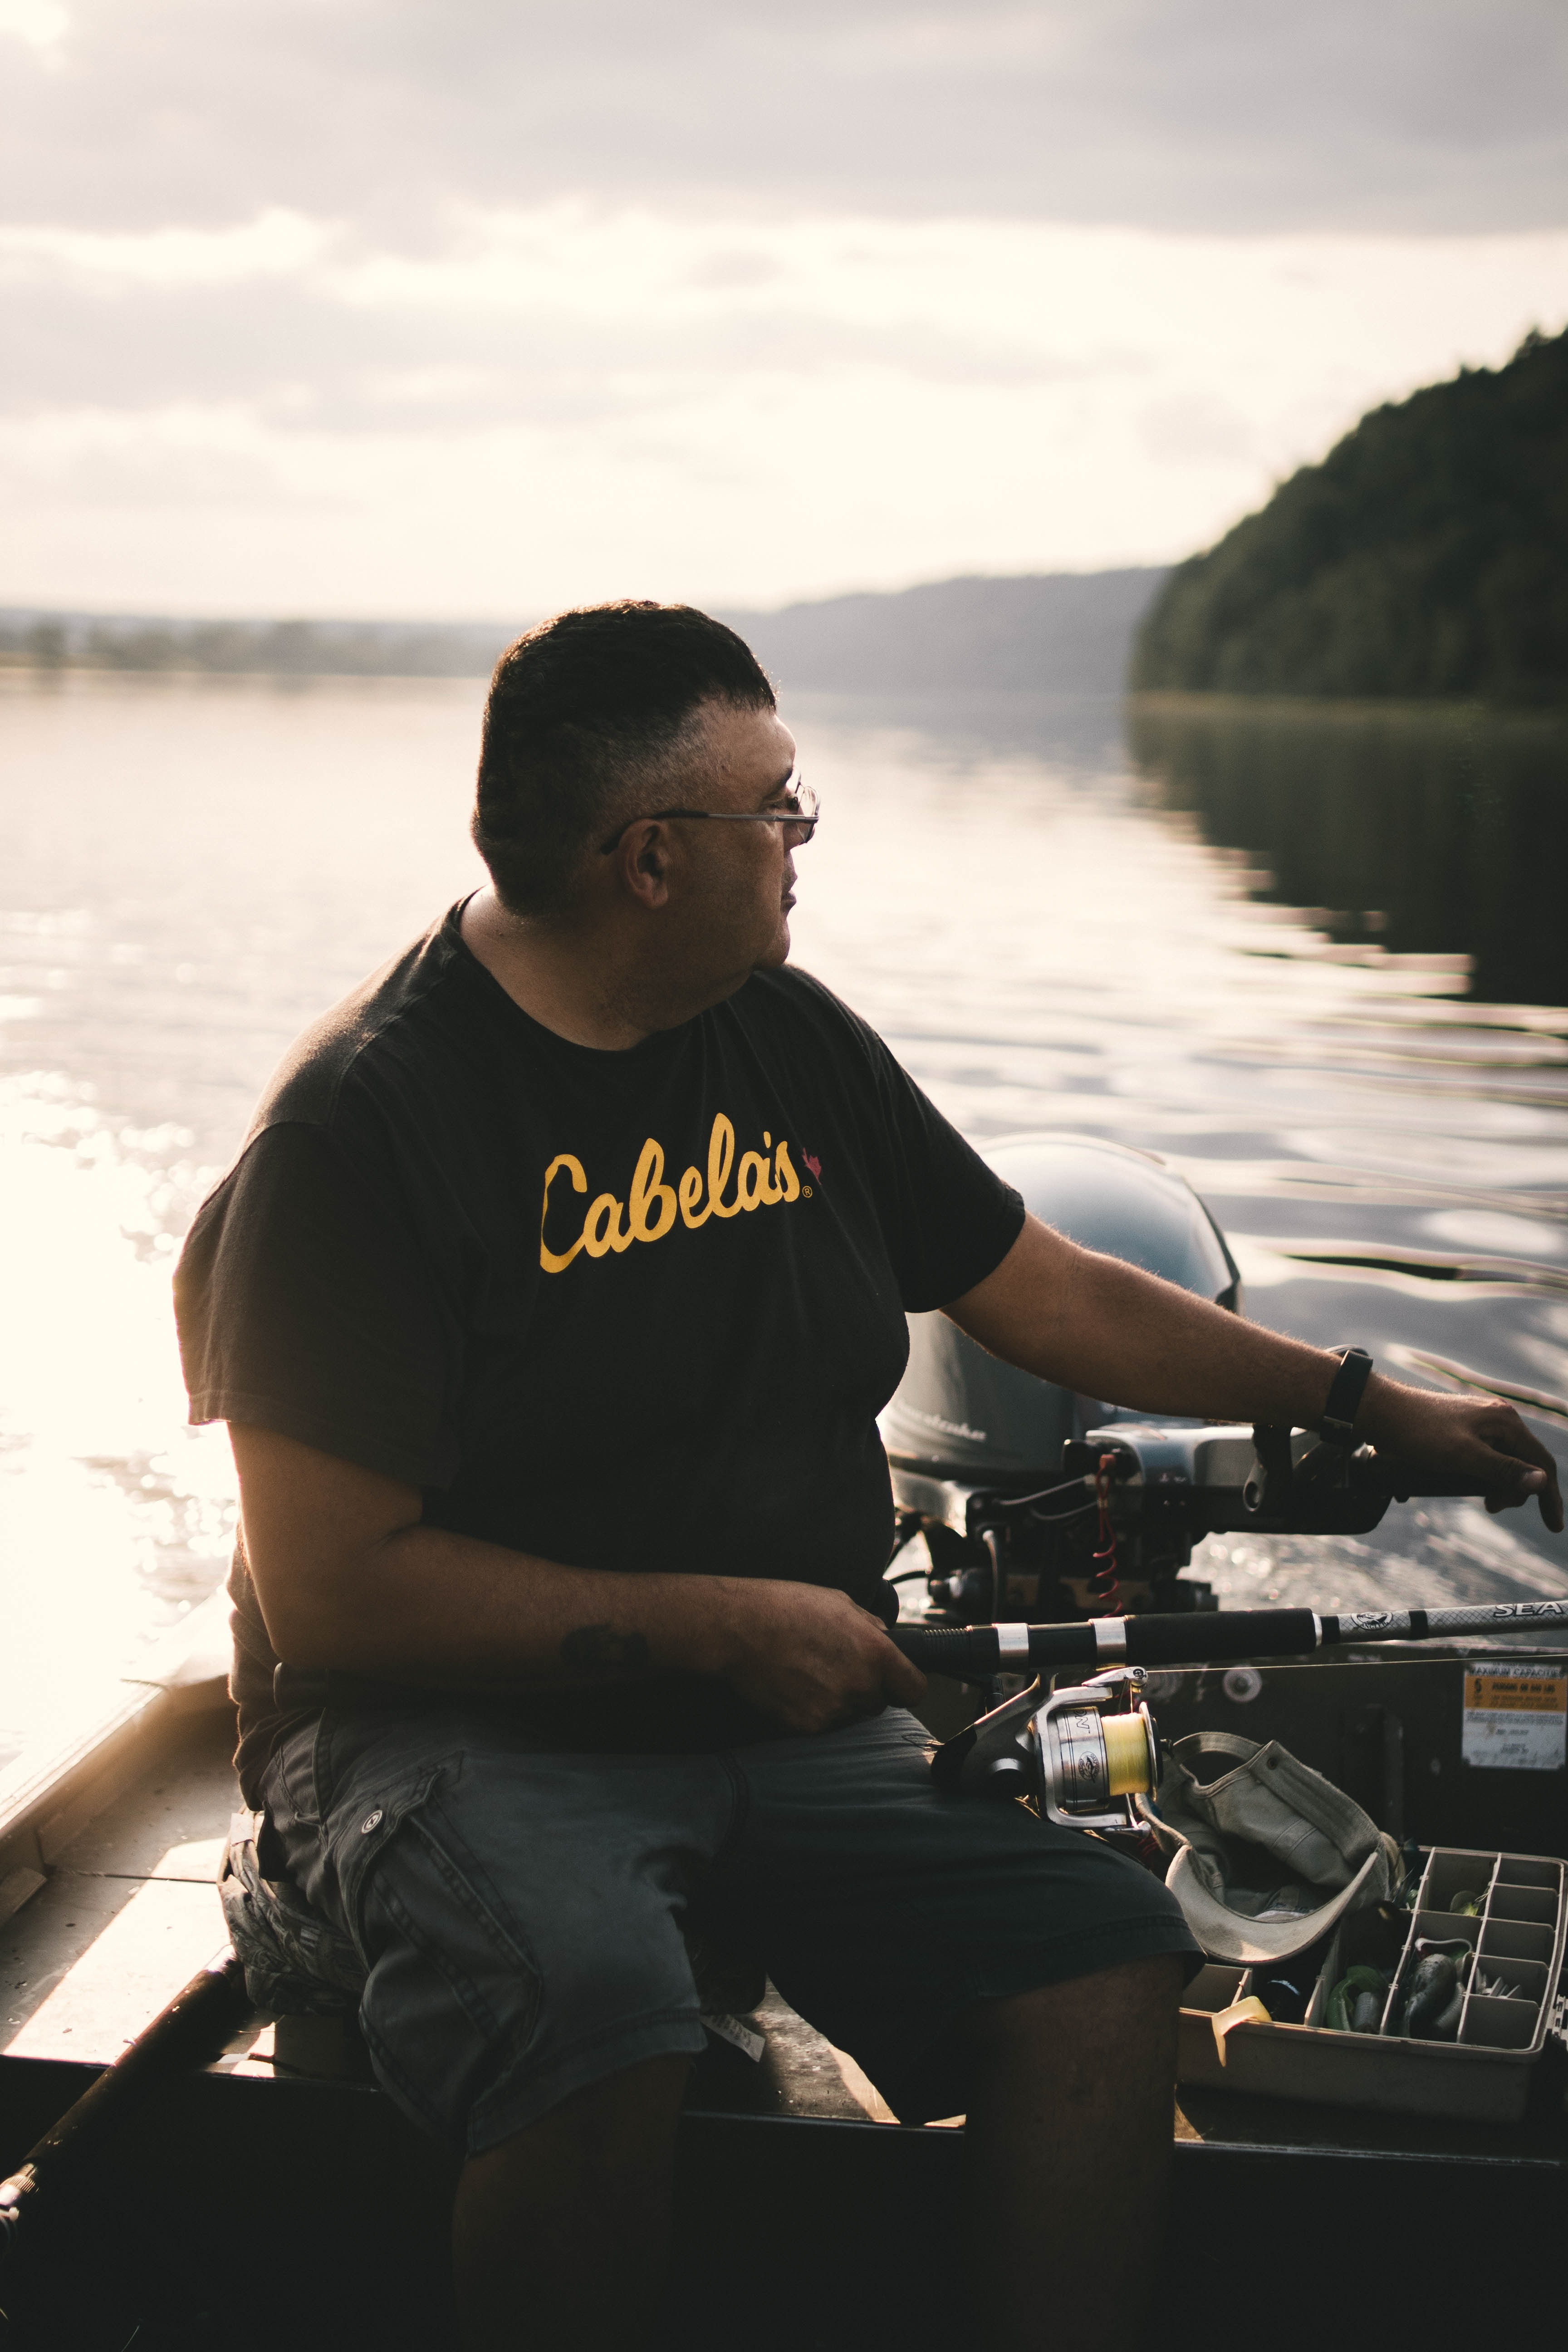 An in-depth review of the best Cabelas fishing rods available in 2019.